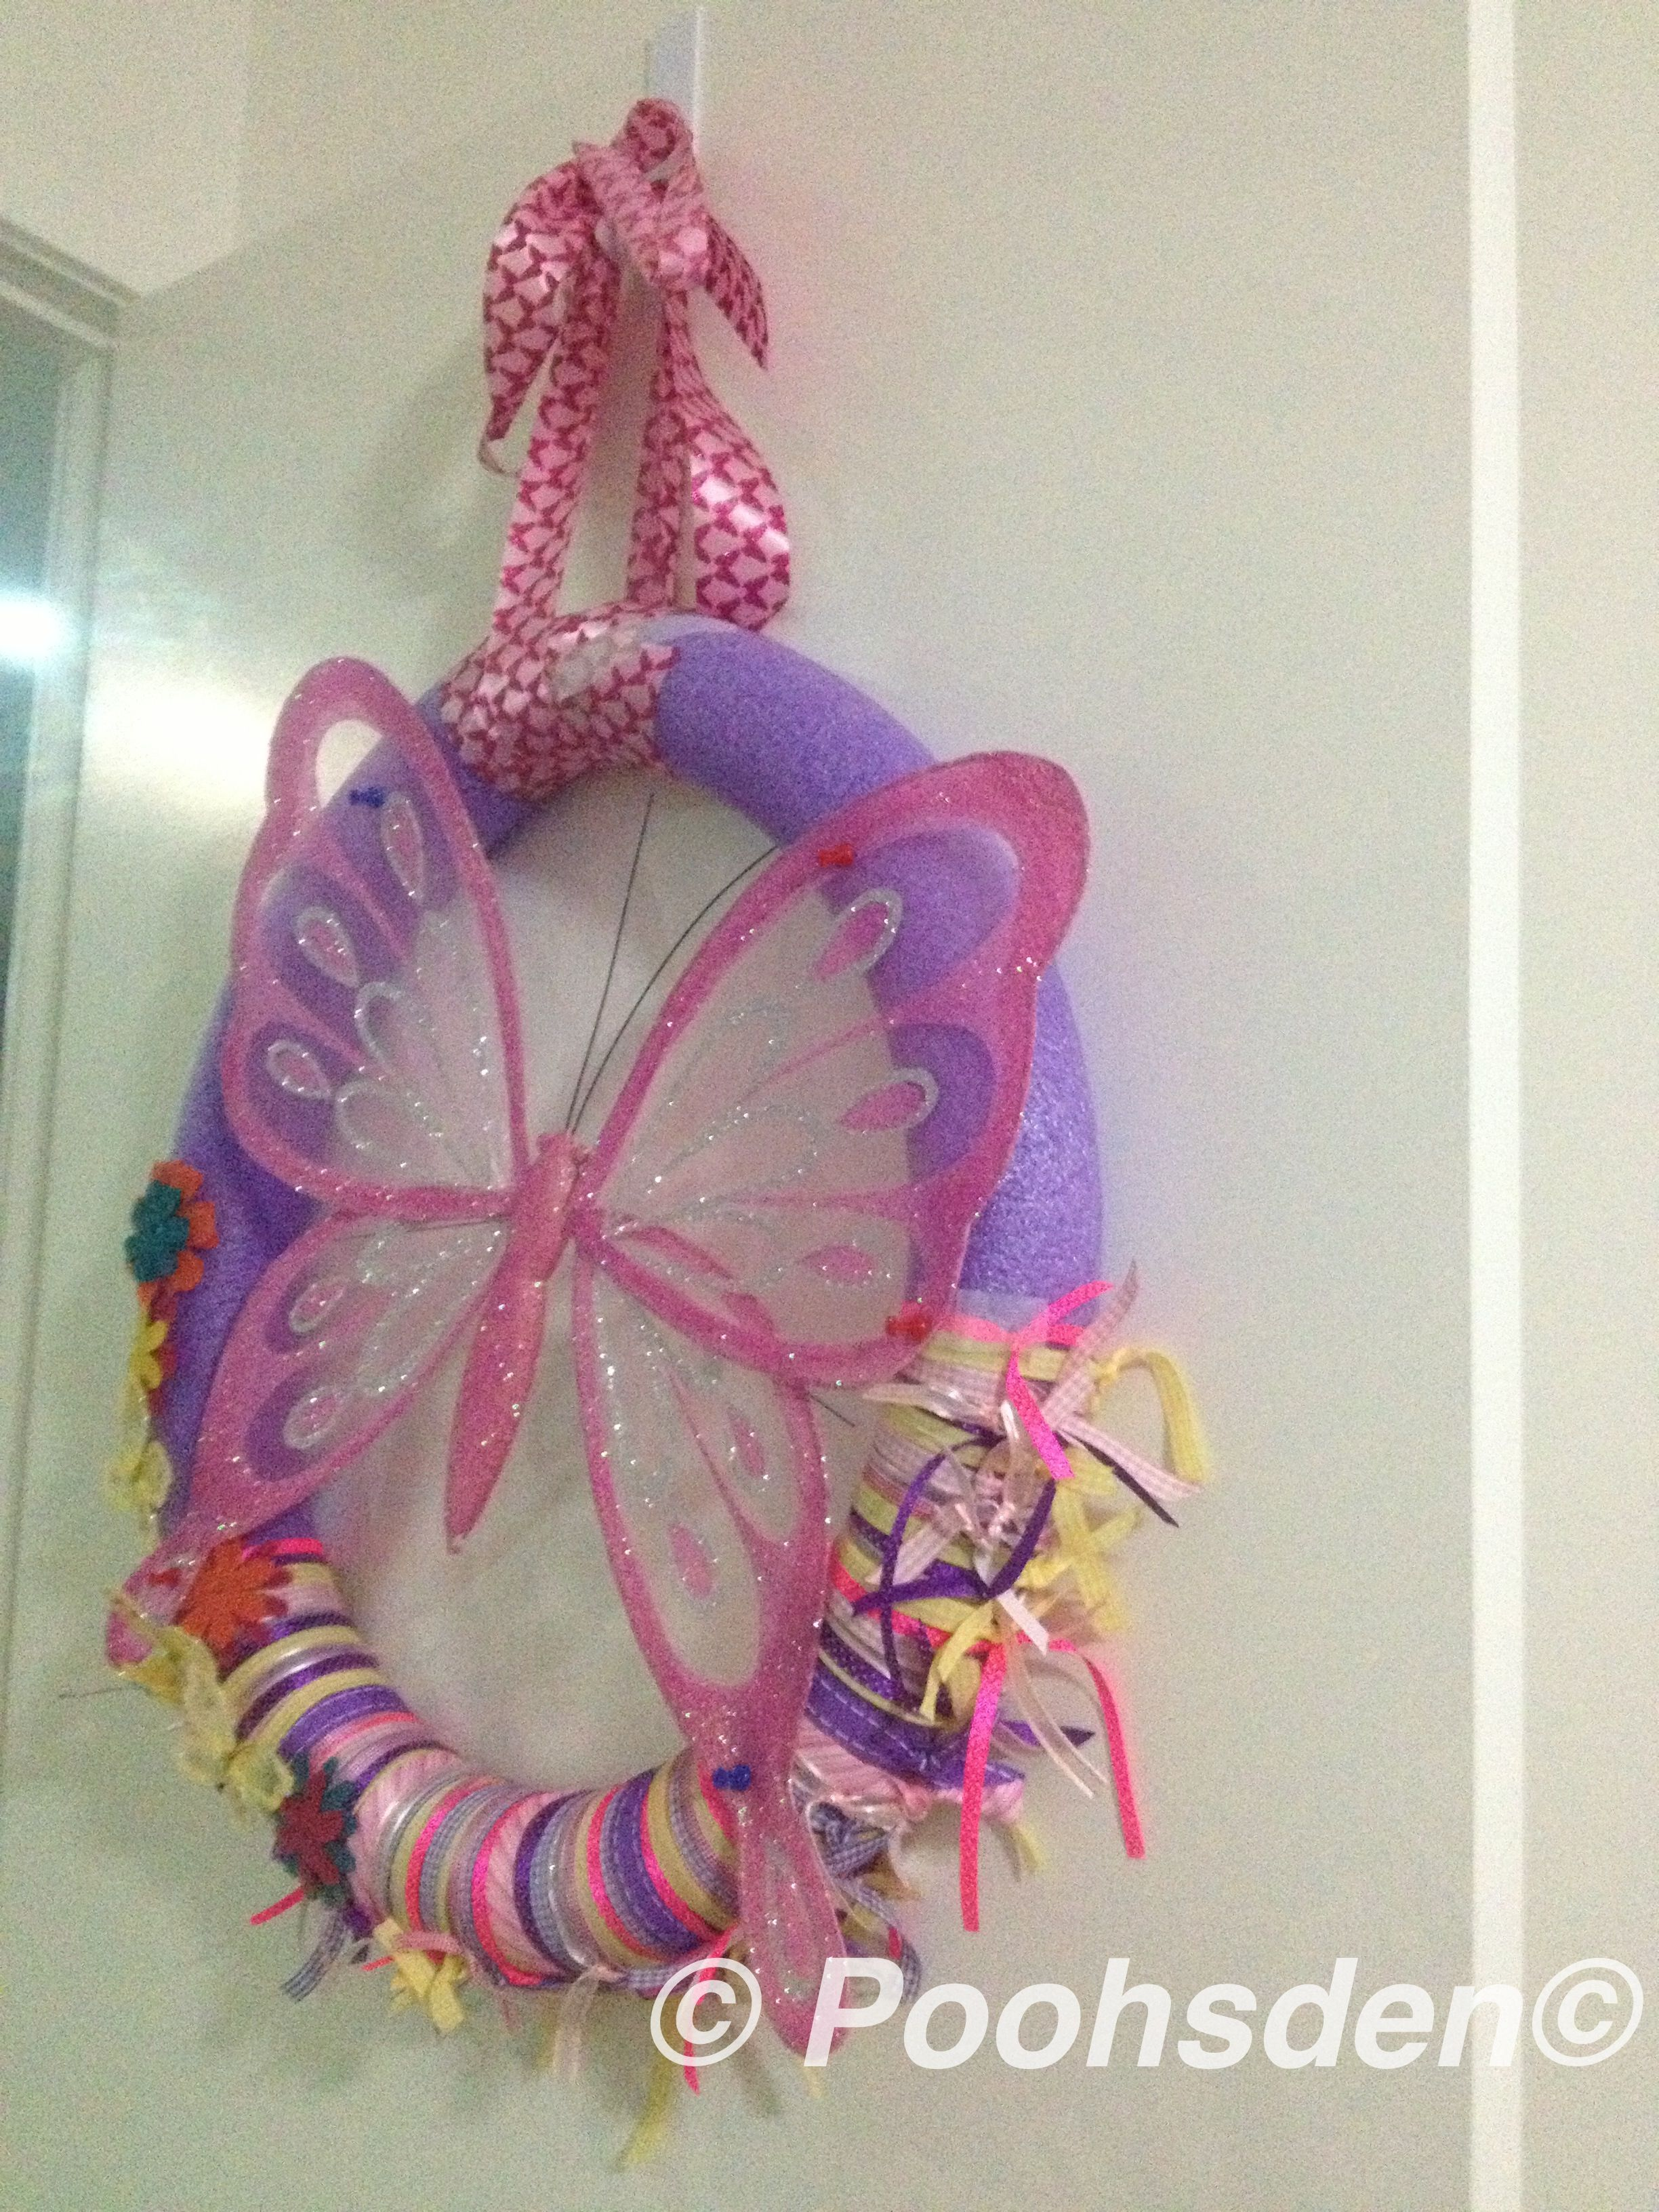 Diy Pool Noodle Wreath Butterfly Room Decor Poohsden  # Muebles Doo Beograd